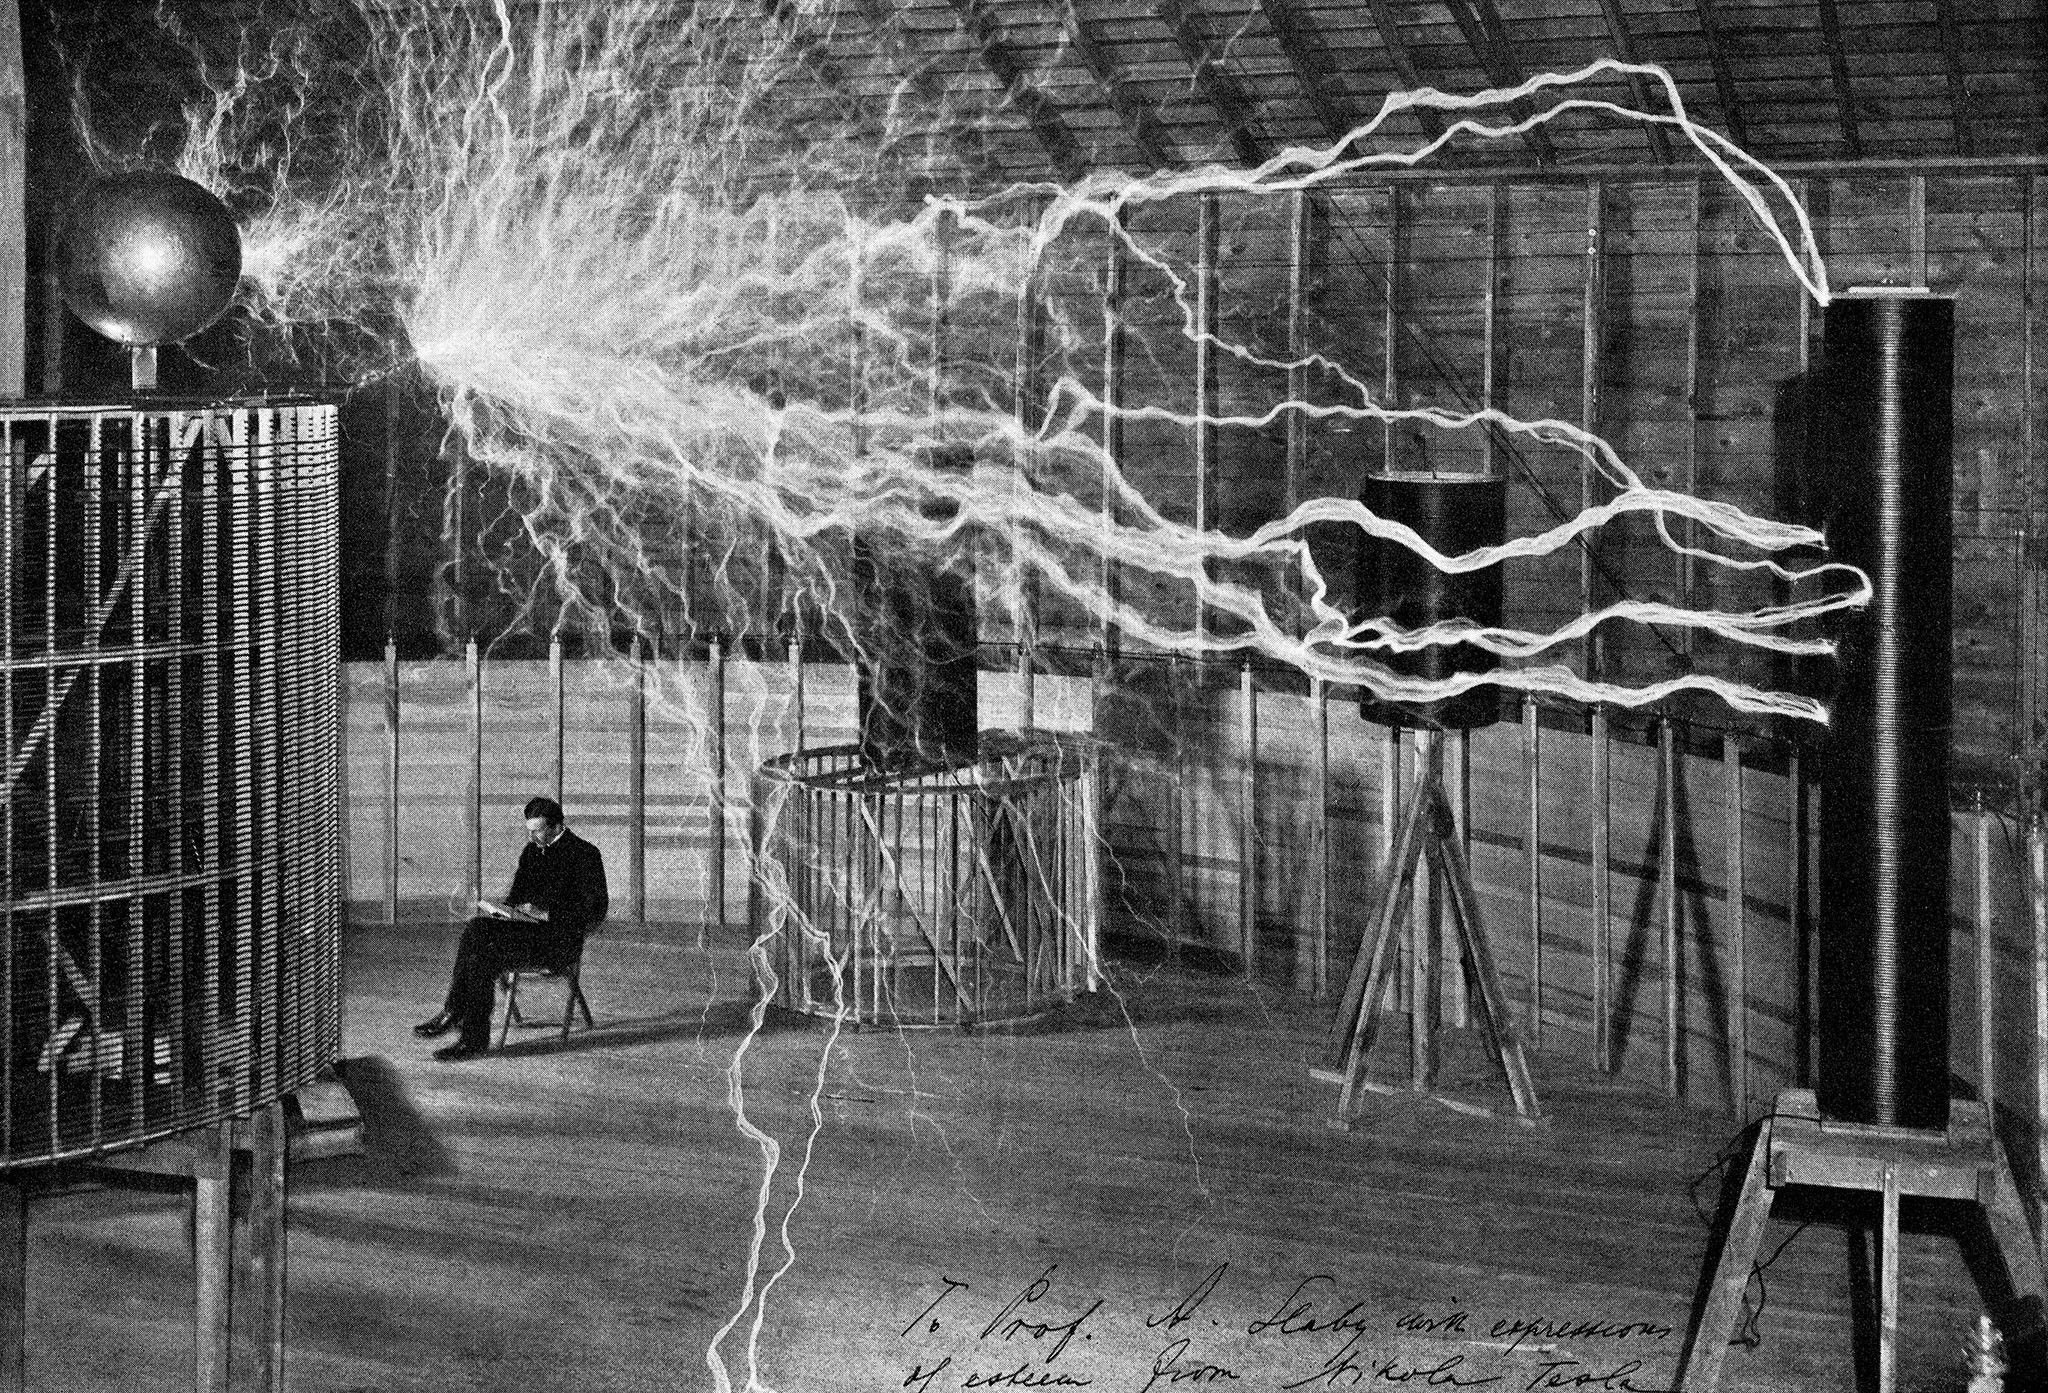 Edison and Tesla's cutthroat 'Current War' ushered in the electric age | National Geographic